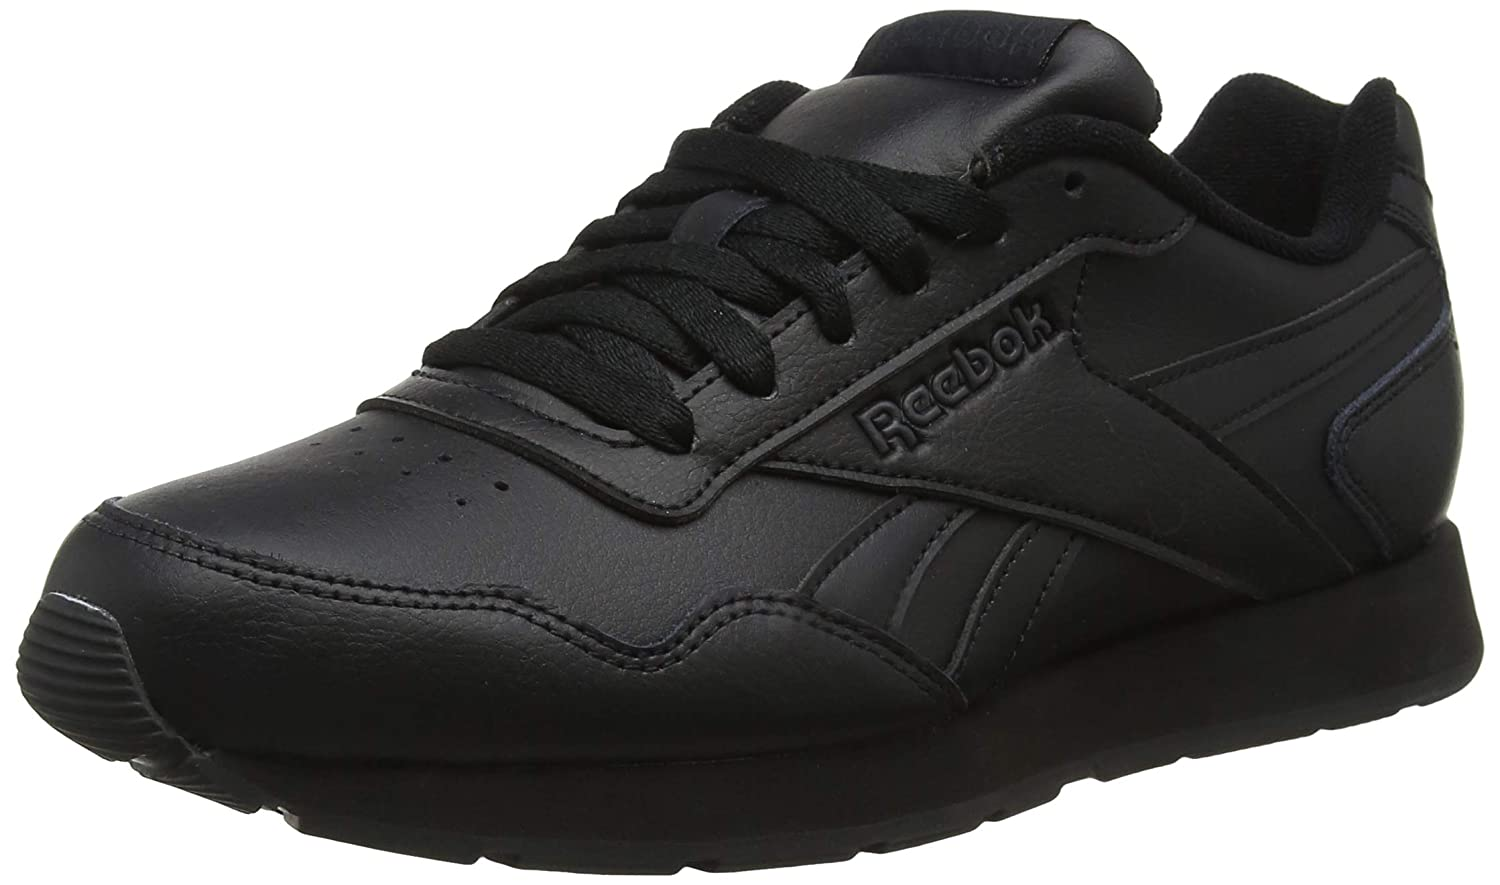 14a9721f Reebok Men's Royal Glide Trail Running Shoes: Amazon.co.uk: Shoes & Bags